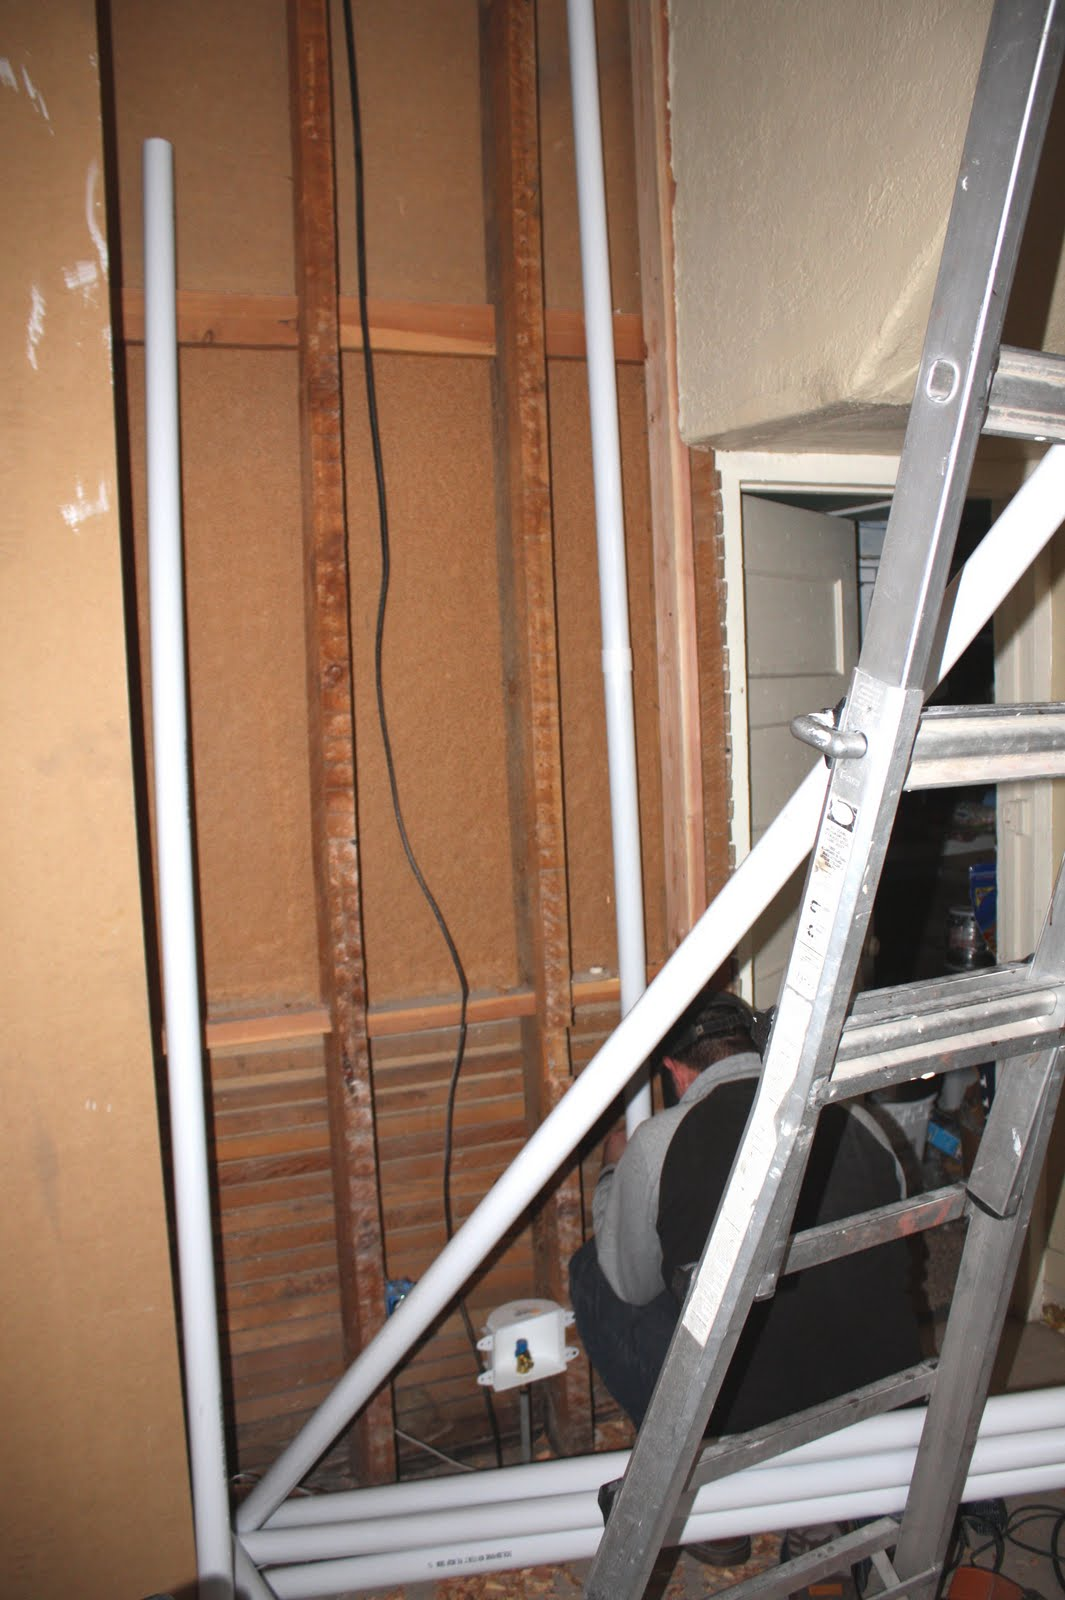 This Old Church House Gets A Modern Upgrade Electrical Wiring We Just Followed The Same Route As Chutefrom Ethans Room All Way Down To Most Perfect Spot Right By Water Heater In Basement